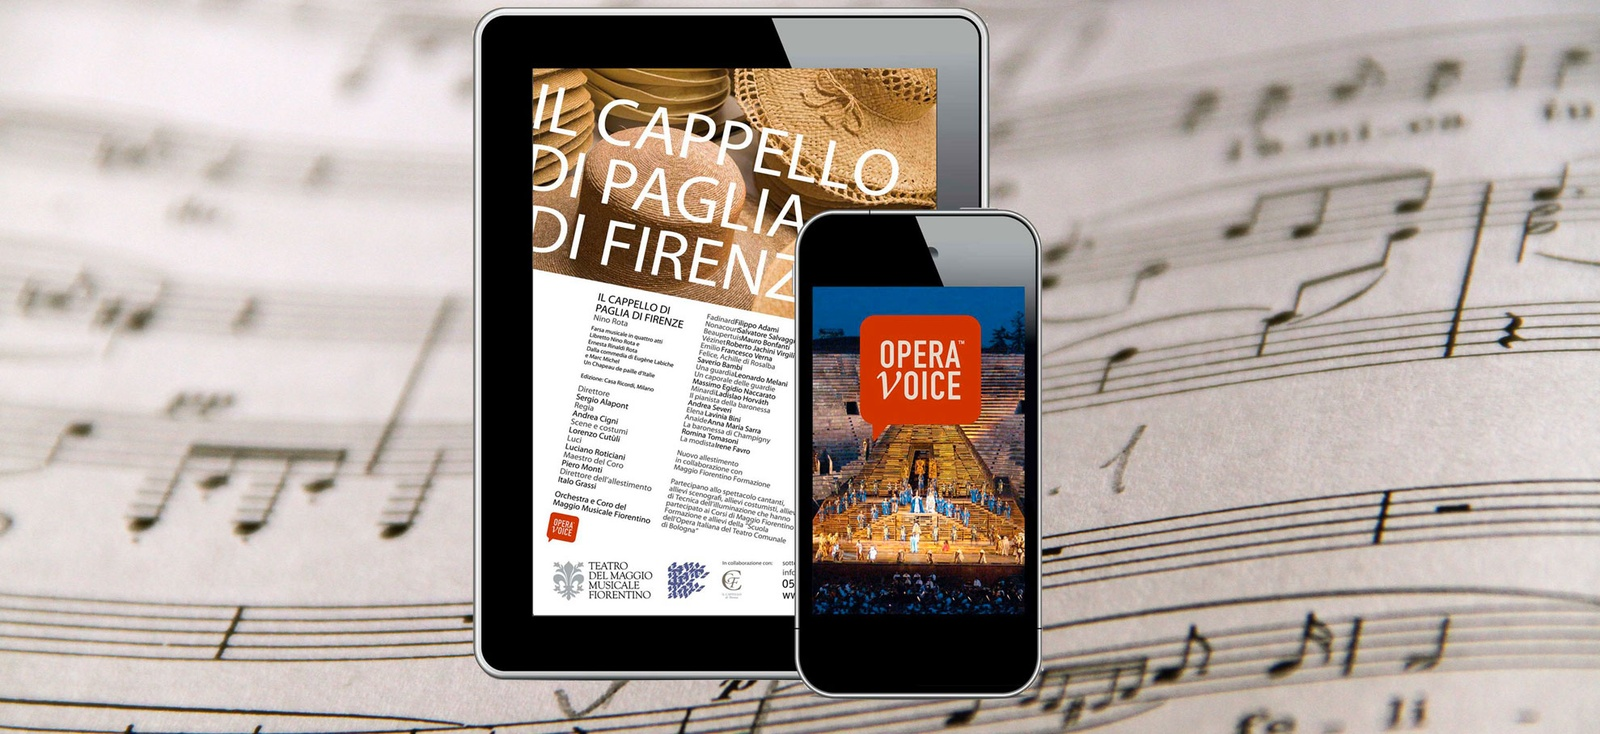 OperaVoice on mobile